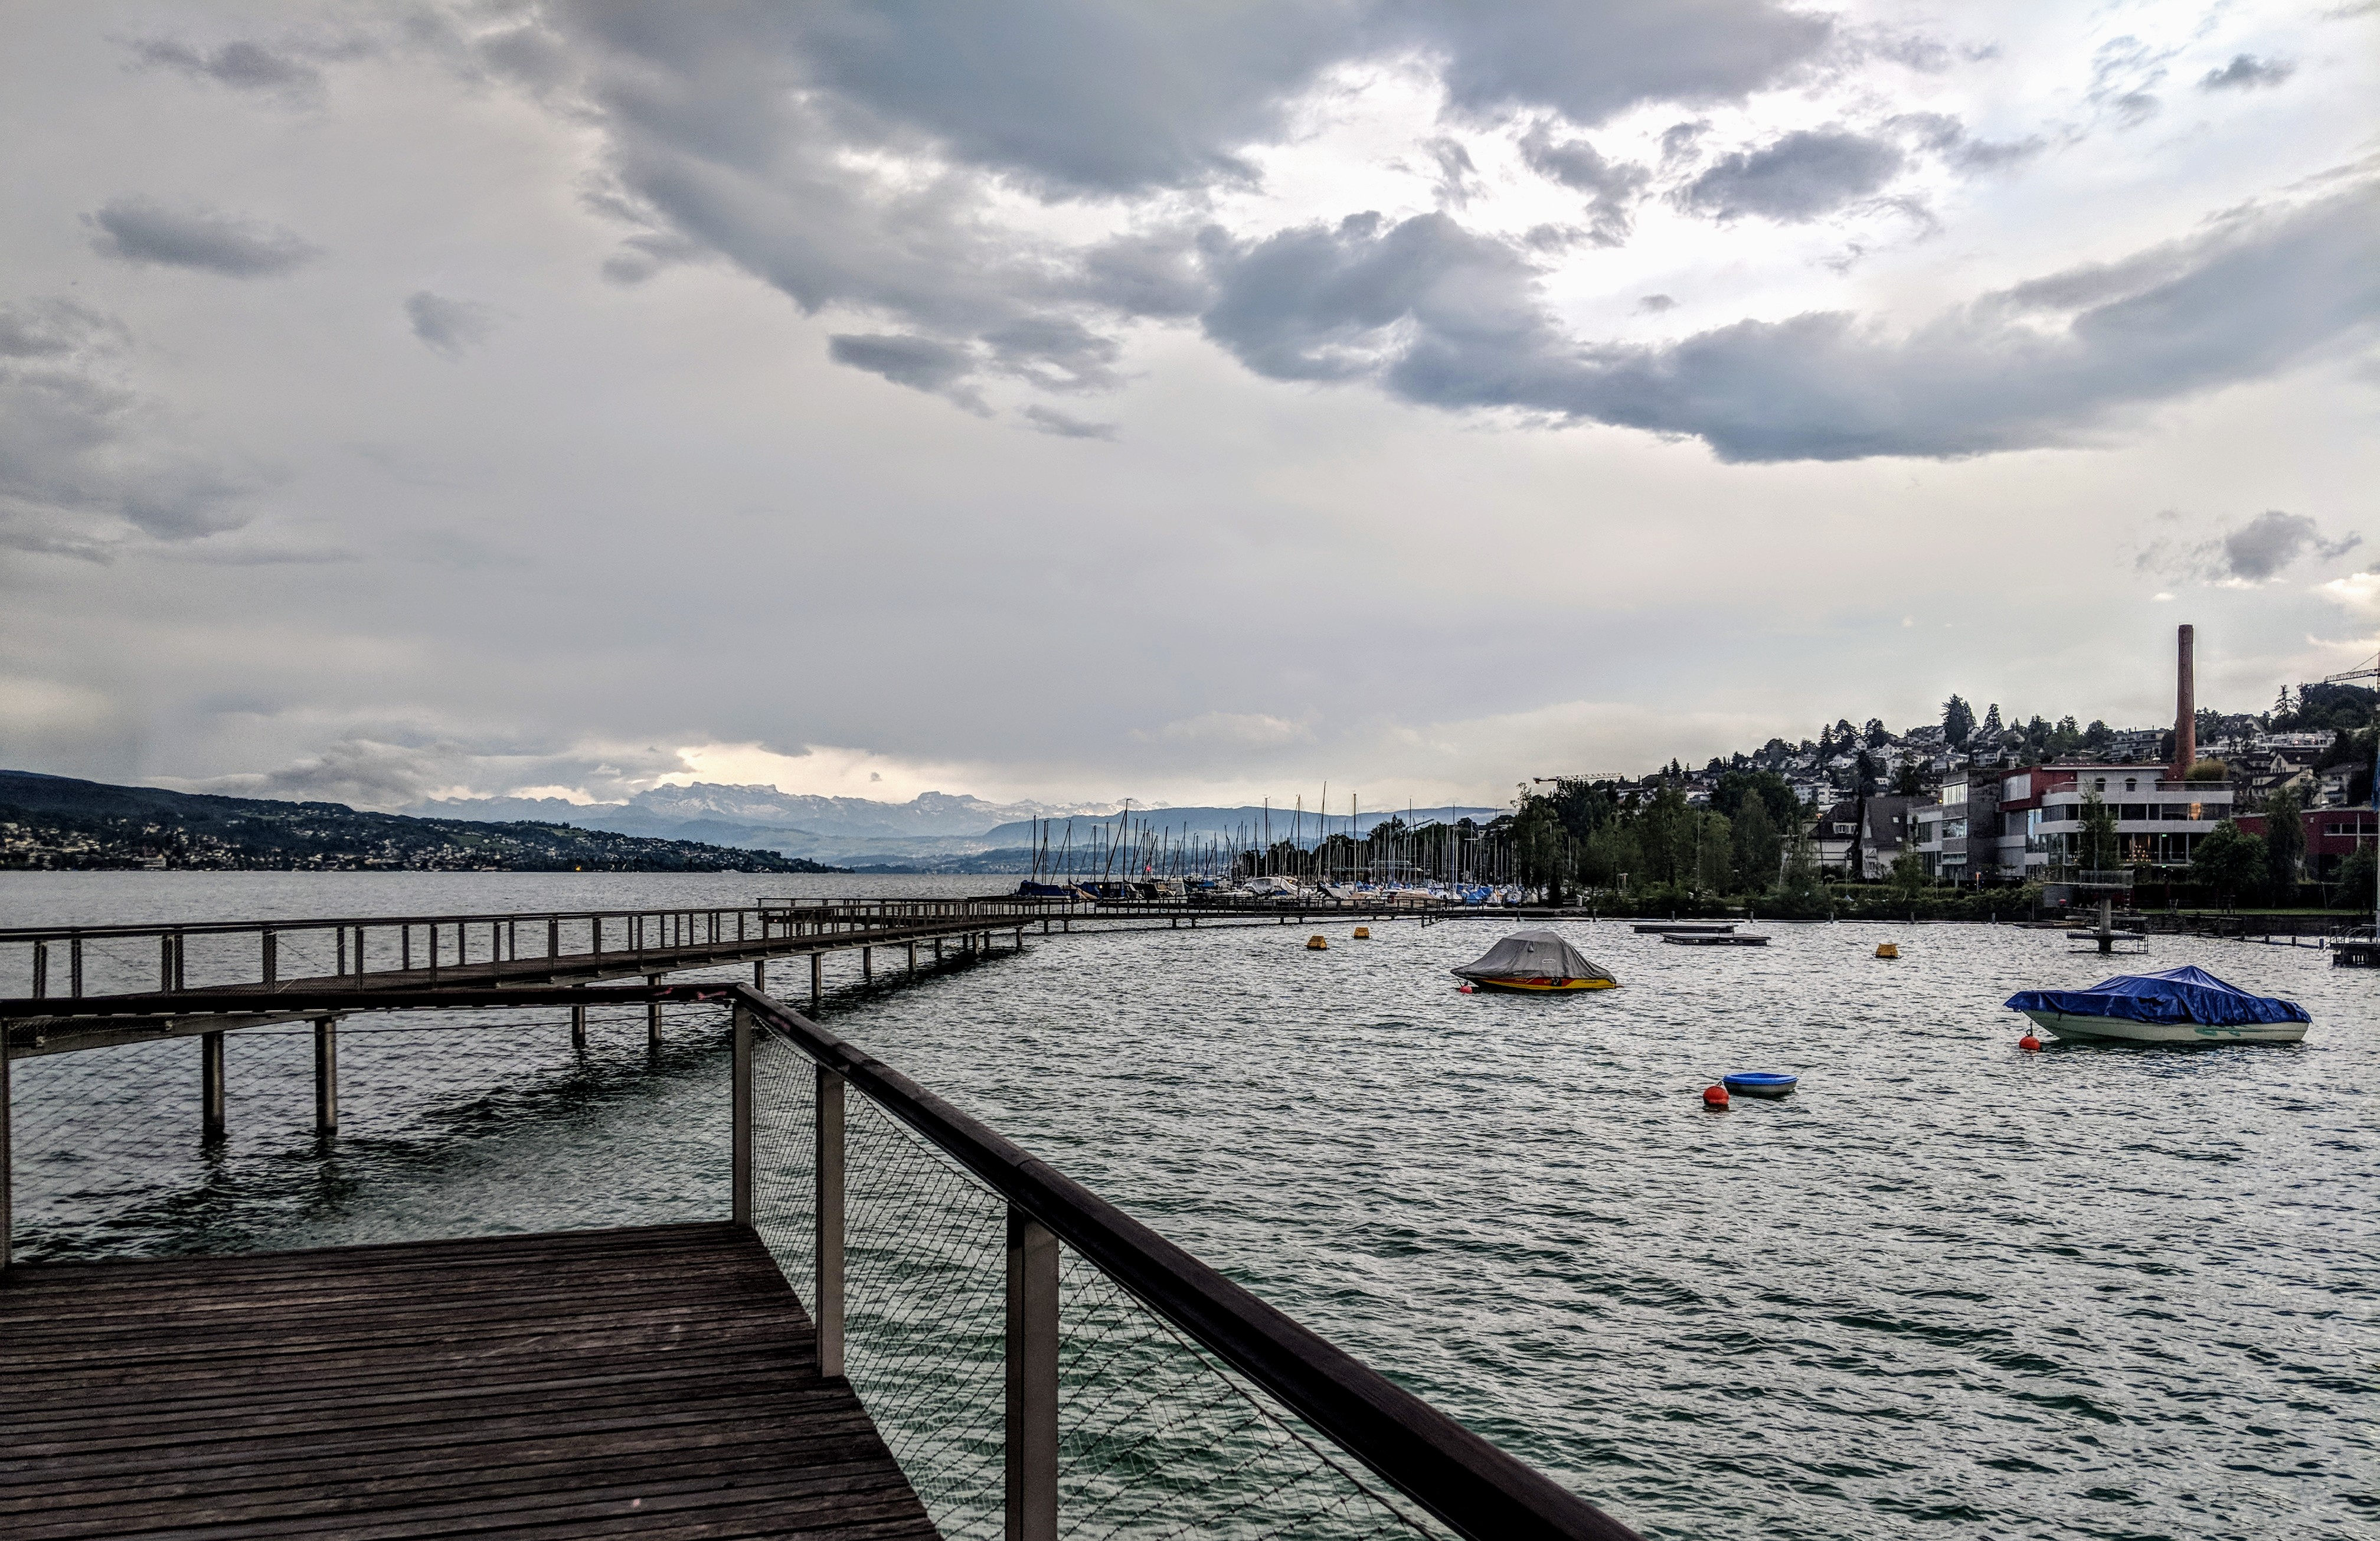 Running route in Zurich - Footbridge2